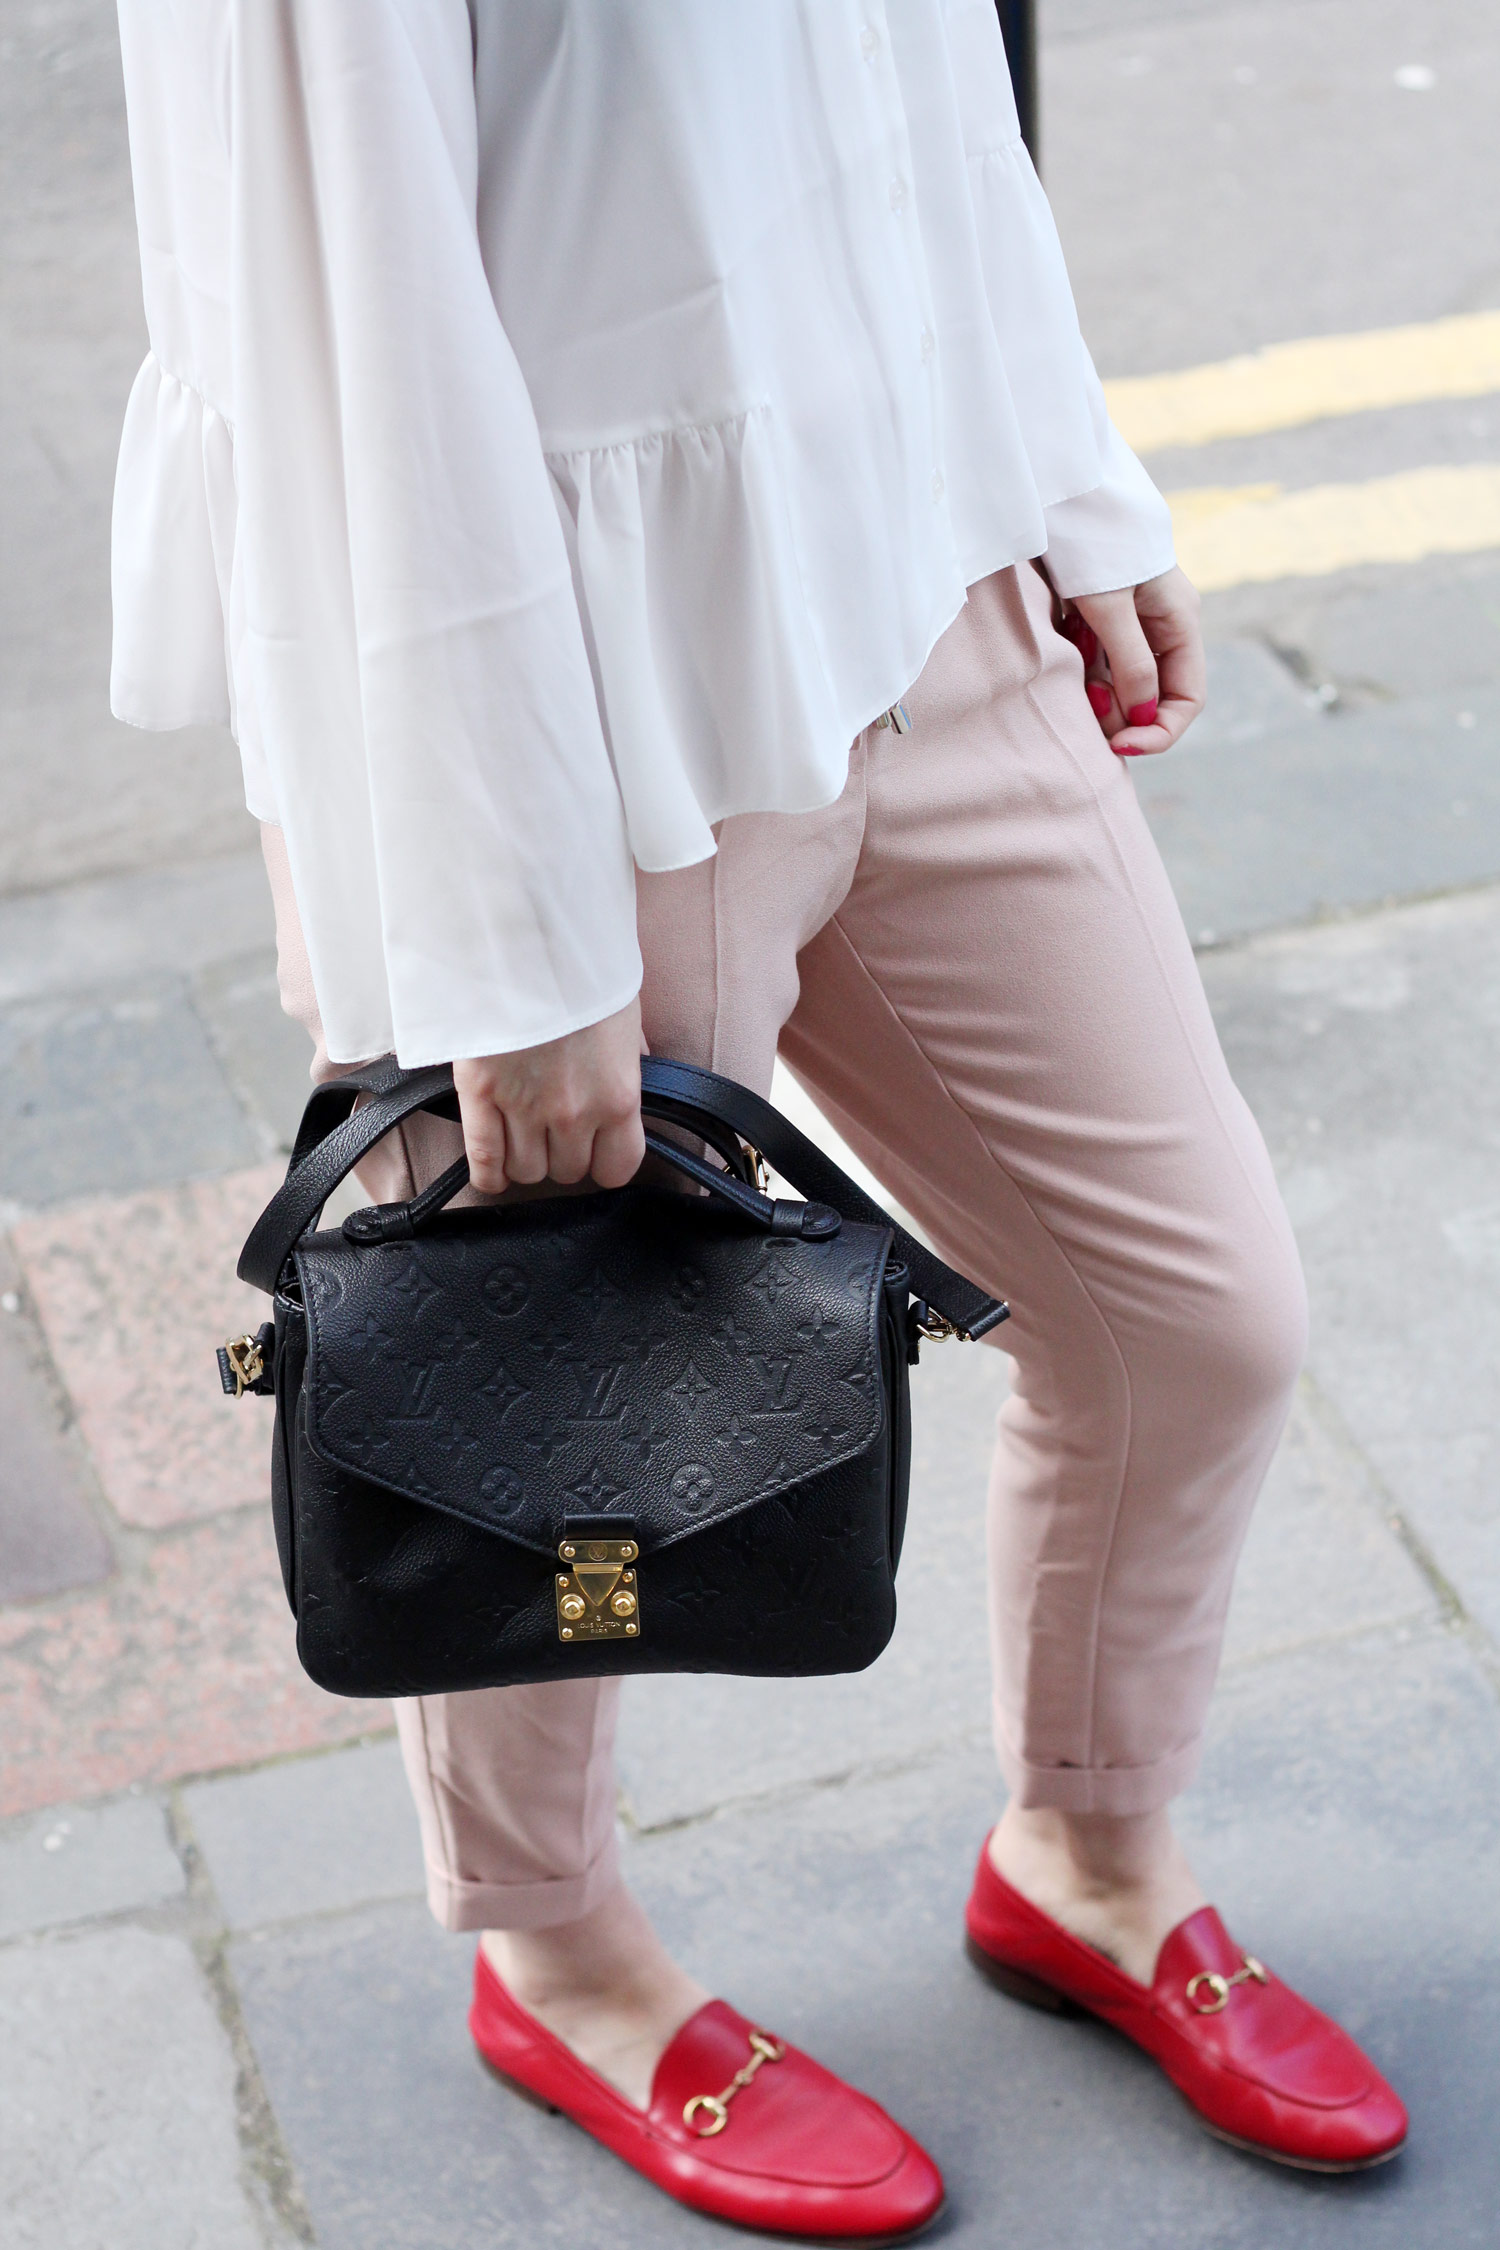 asos-white-ruffle-hem-blouse-M&S-pink-tie-trousers-gucci-jordaan-loafers-red-16